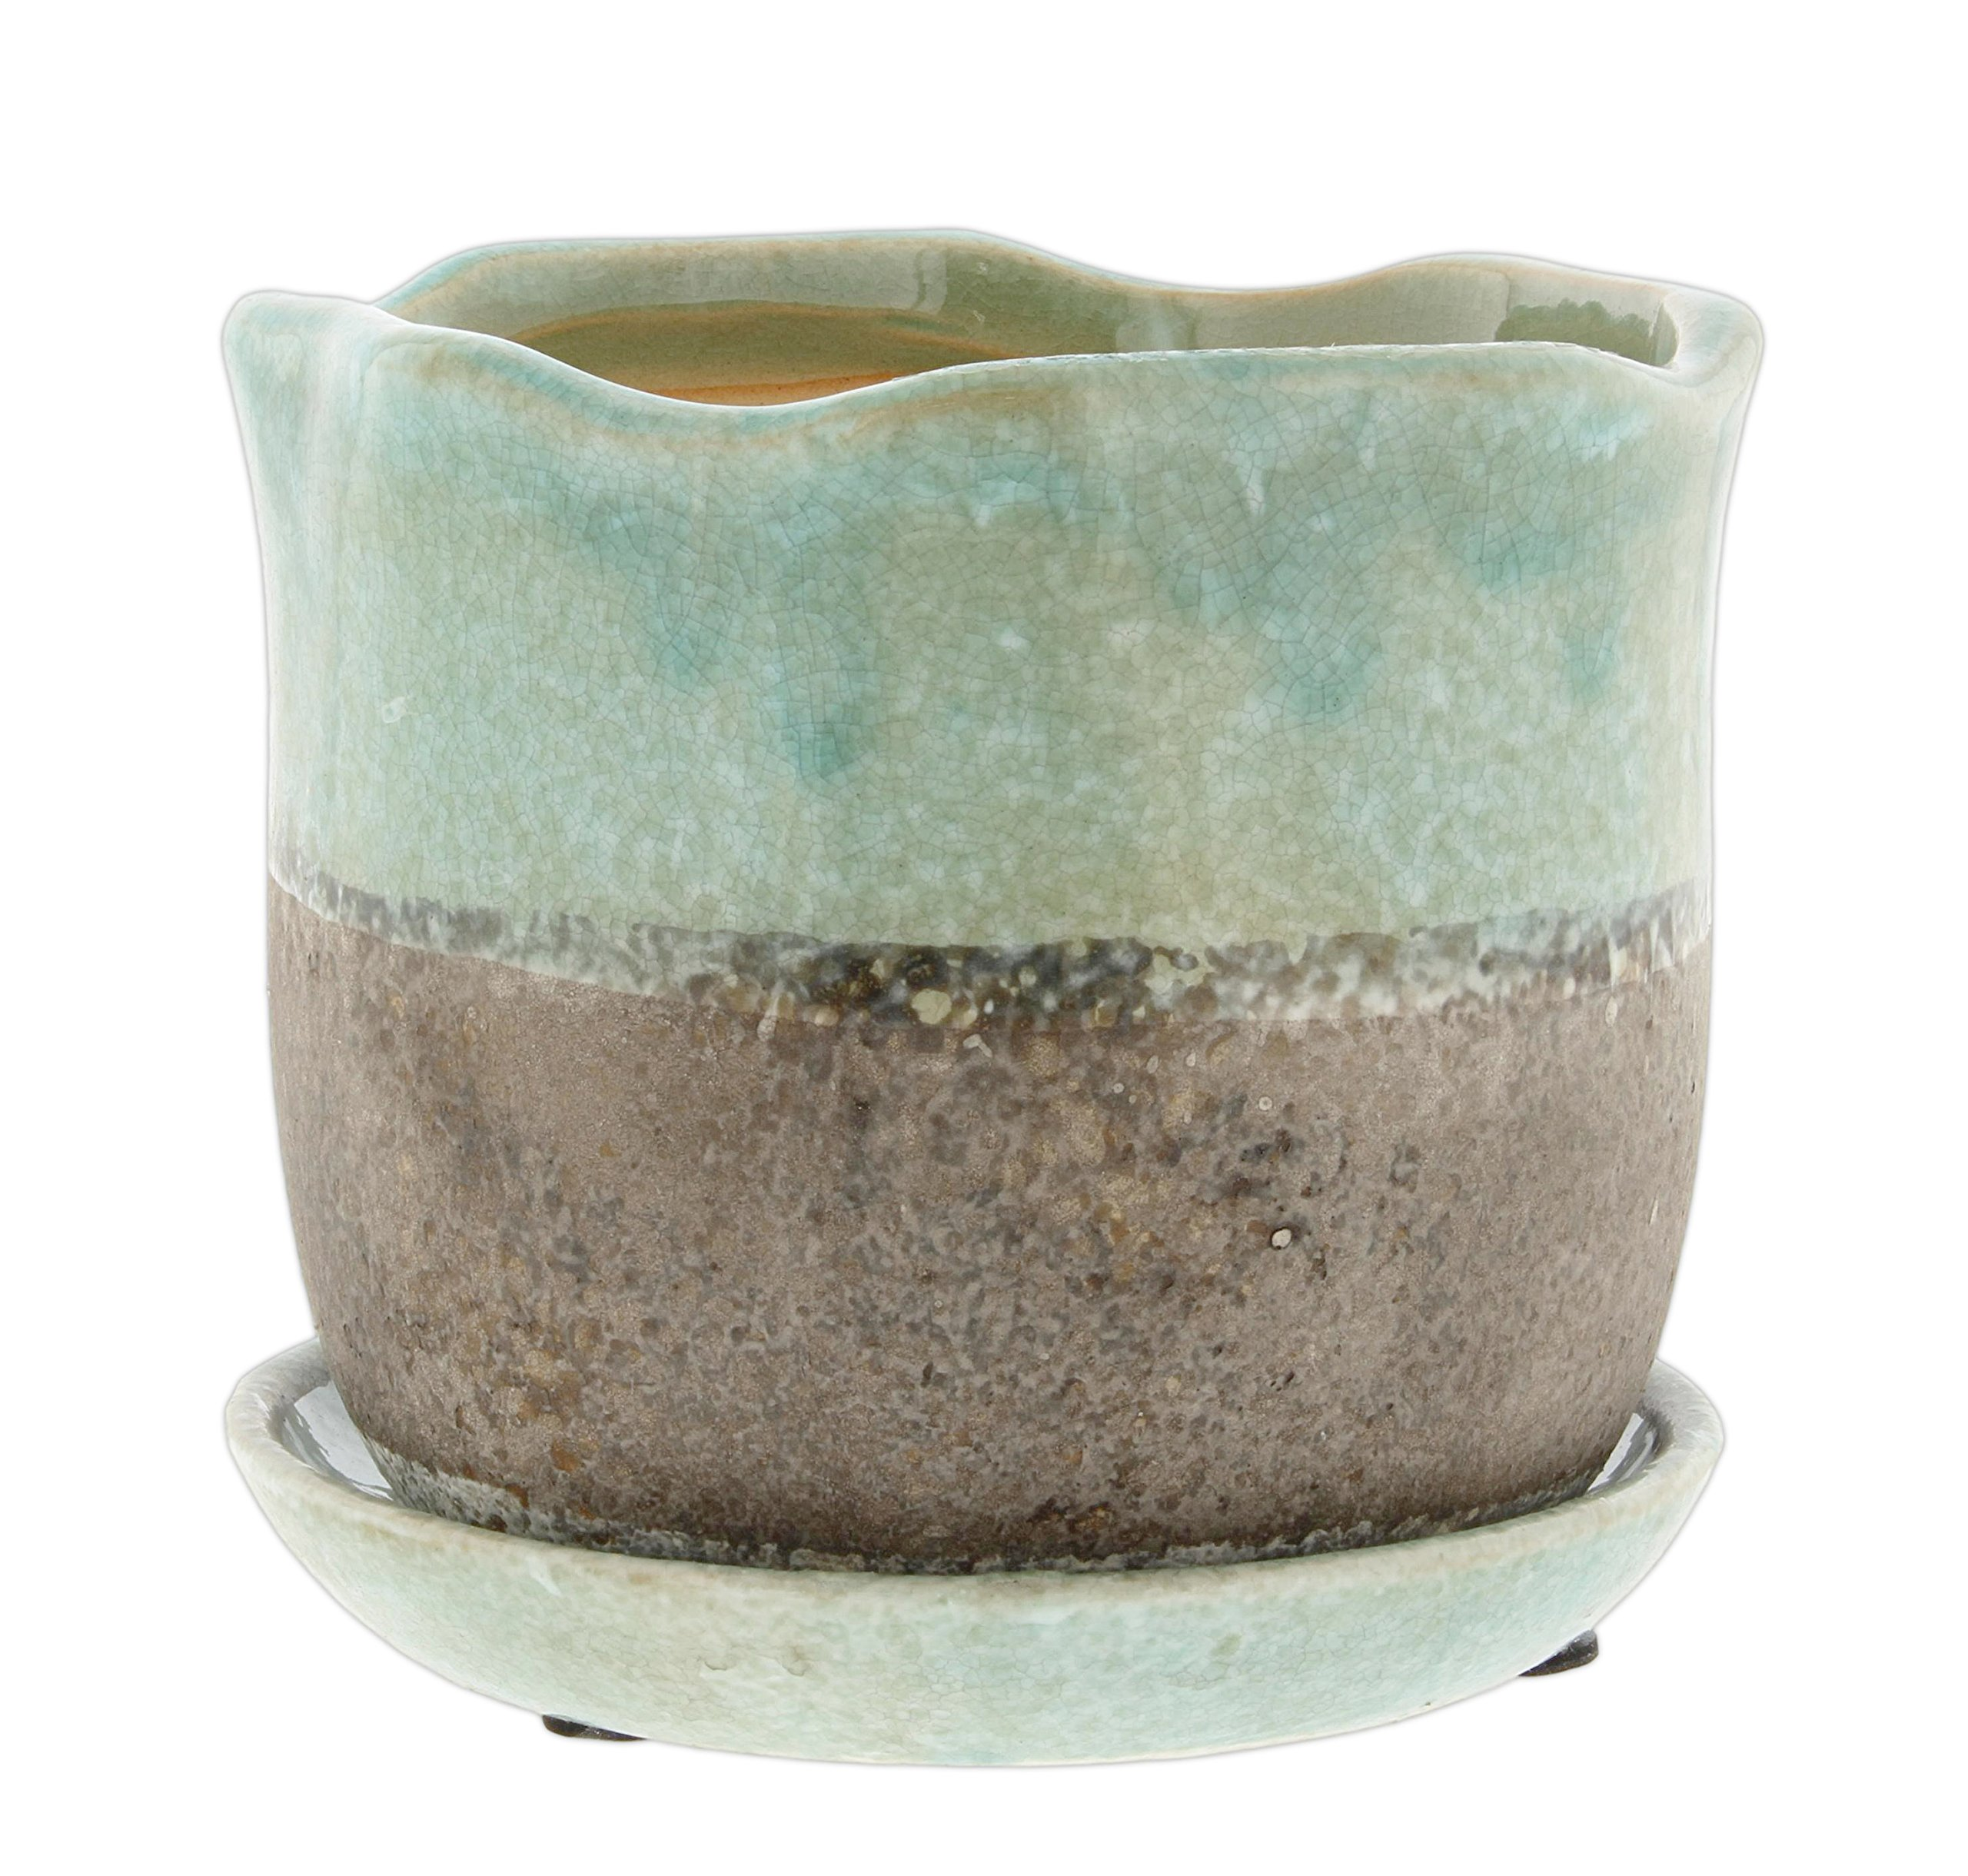 Lucky Winner 5'' Scallop Edged Ceramic Planter with Attached Saucer (Turquoise)